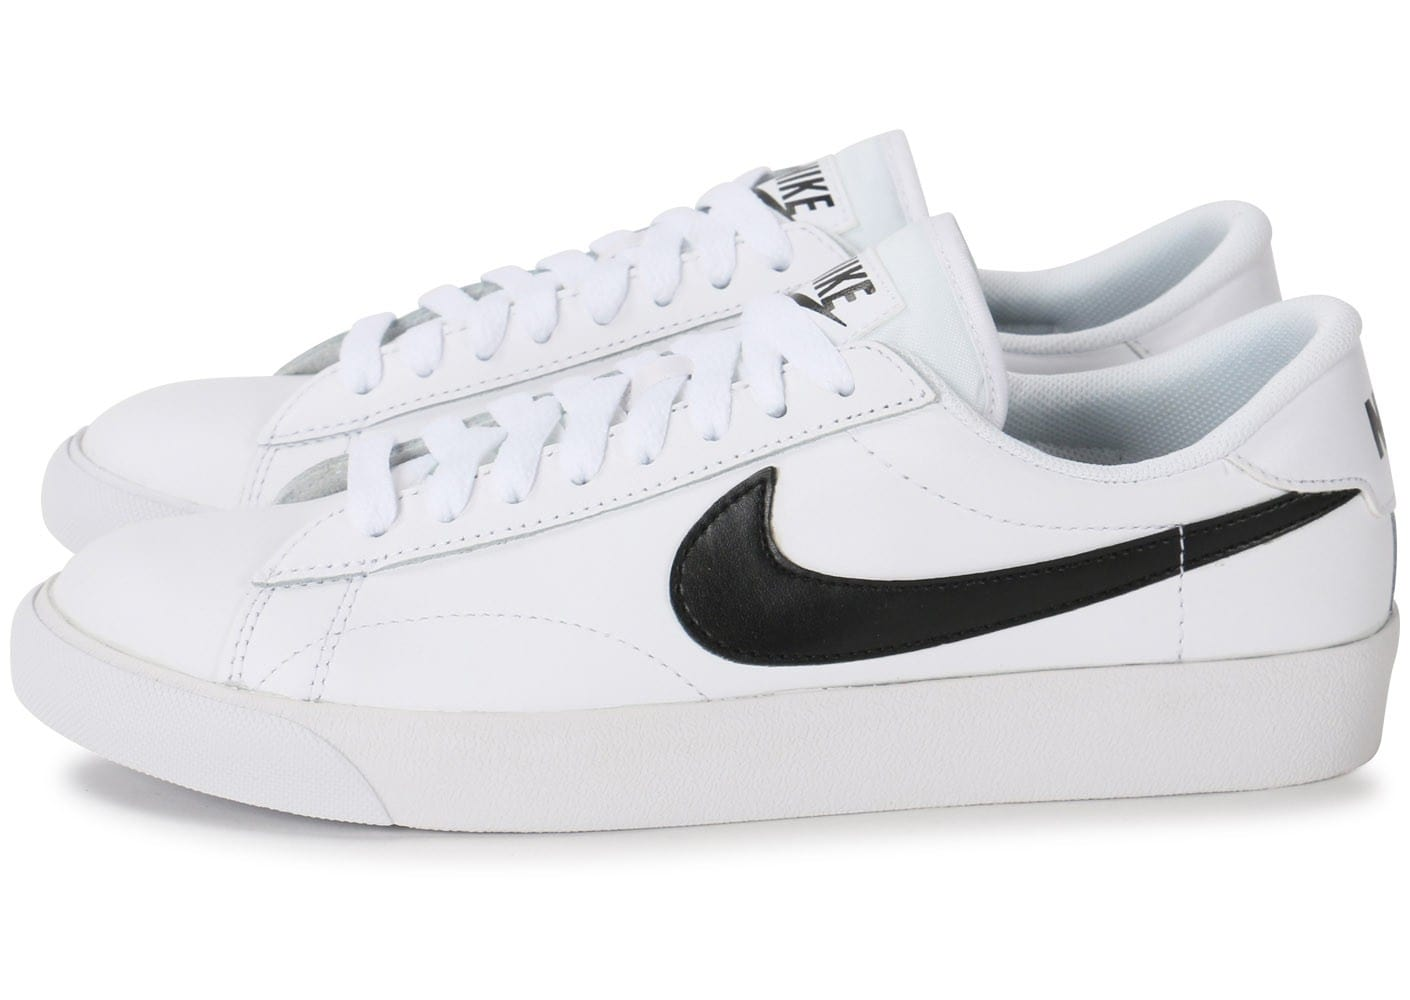 Nike Nike Nike Tennis Classic Blanche Et Noire Chaussures Chaussures Chausport 4320b2